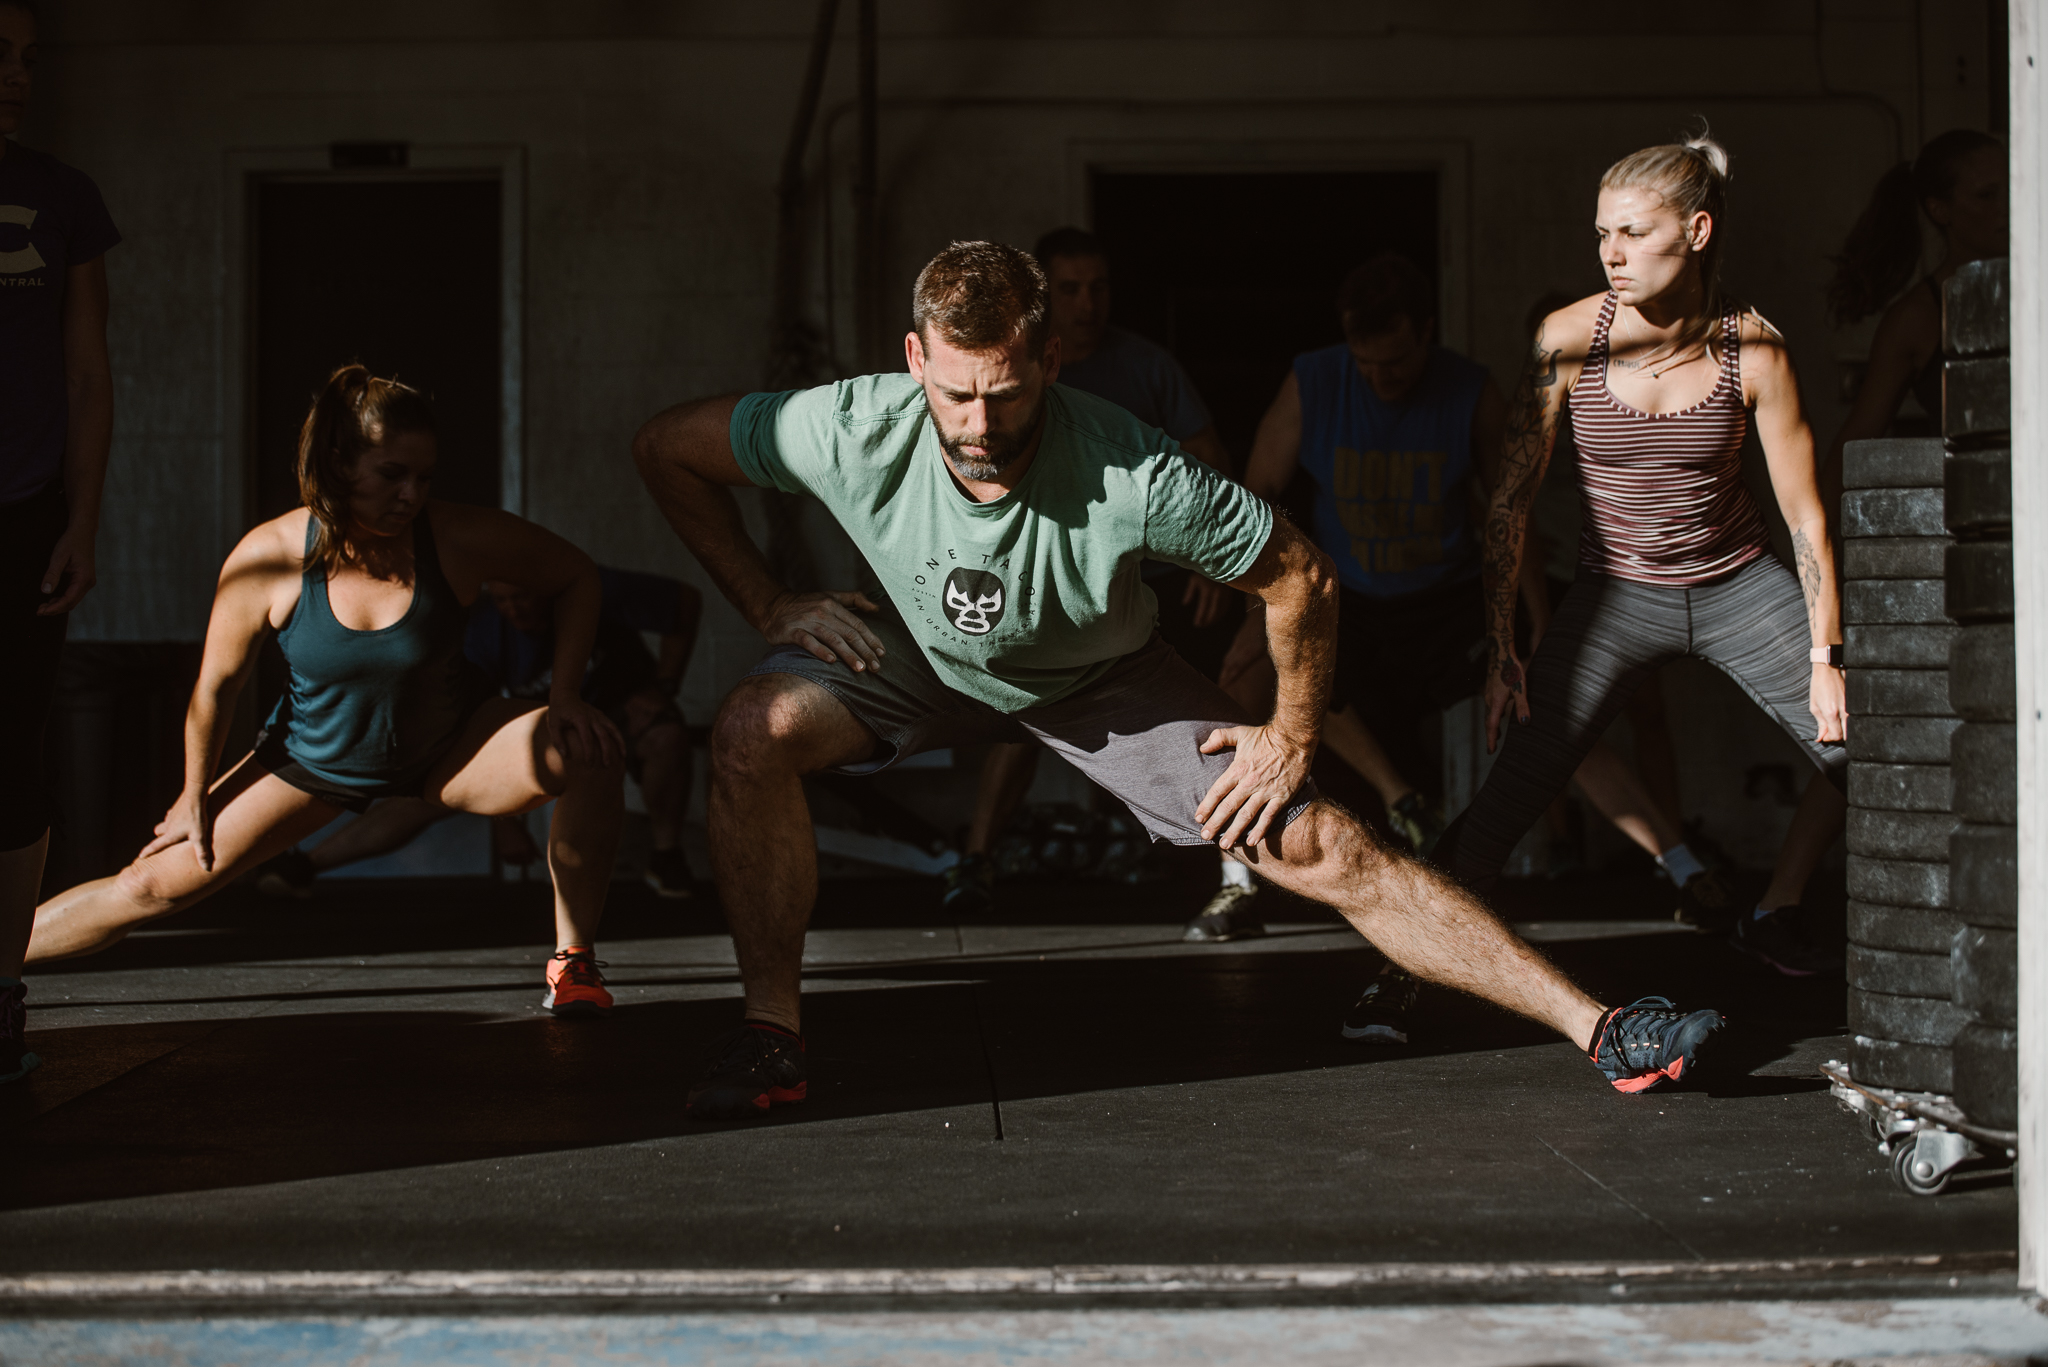 Austin and Round Rock Commercial Photography - Emily Ingalls Photography - Sports and Fitness Photography - CrossFit Central_CrossFit and Weight lifting Photography-8.jpg